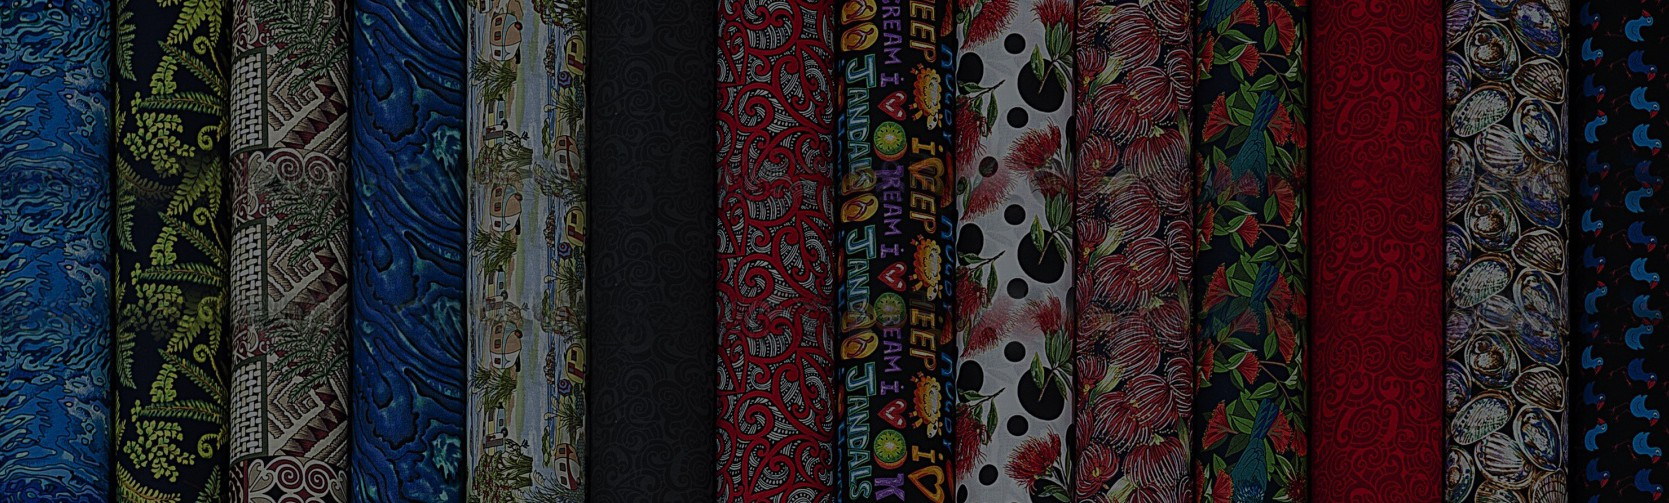 Nutex Fabric Wholesalers Fabric Roll